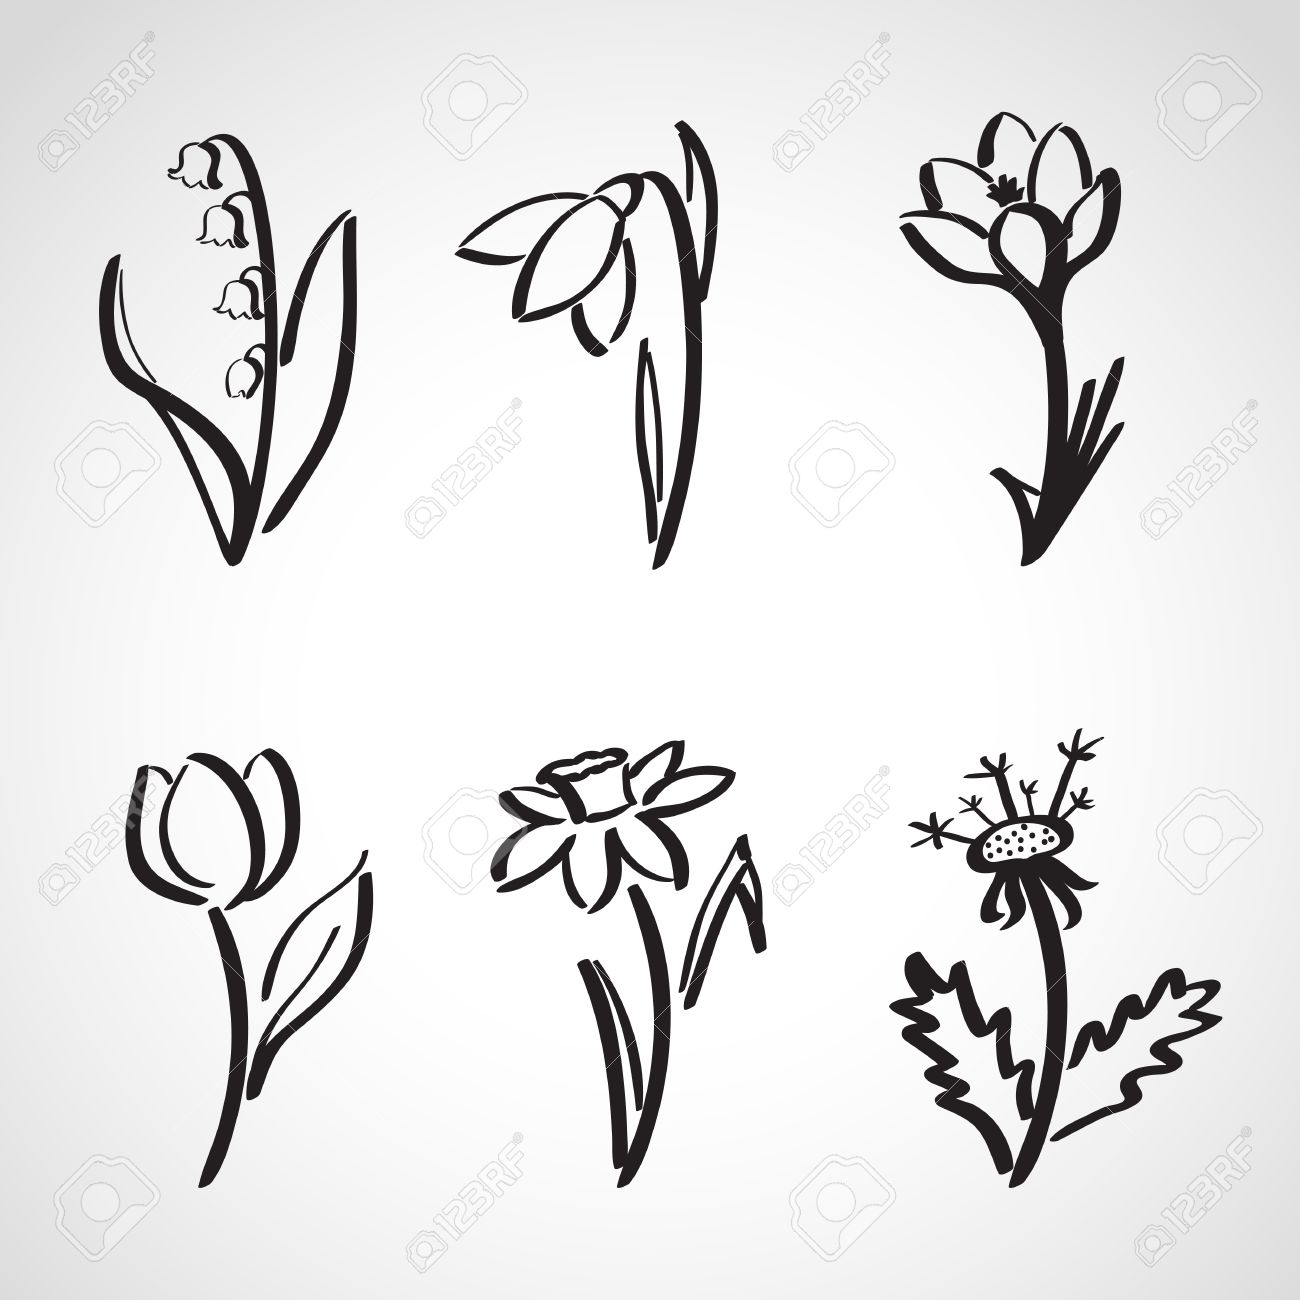 ink style hand drawn sketch set spring flowers royalty free